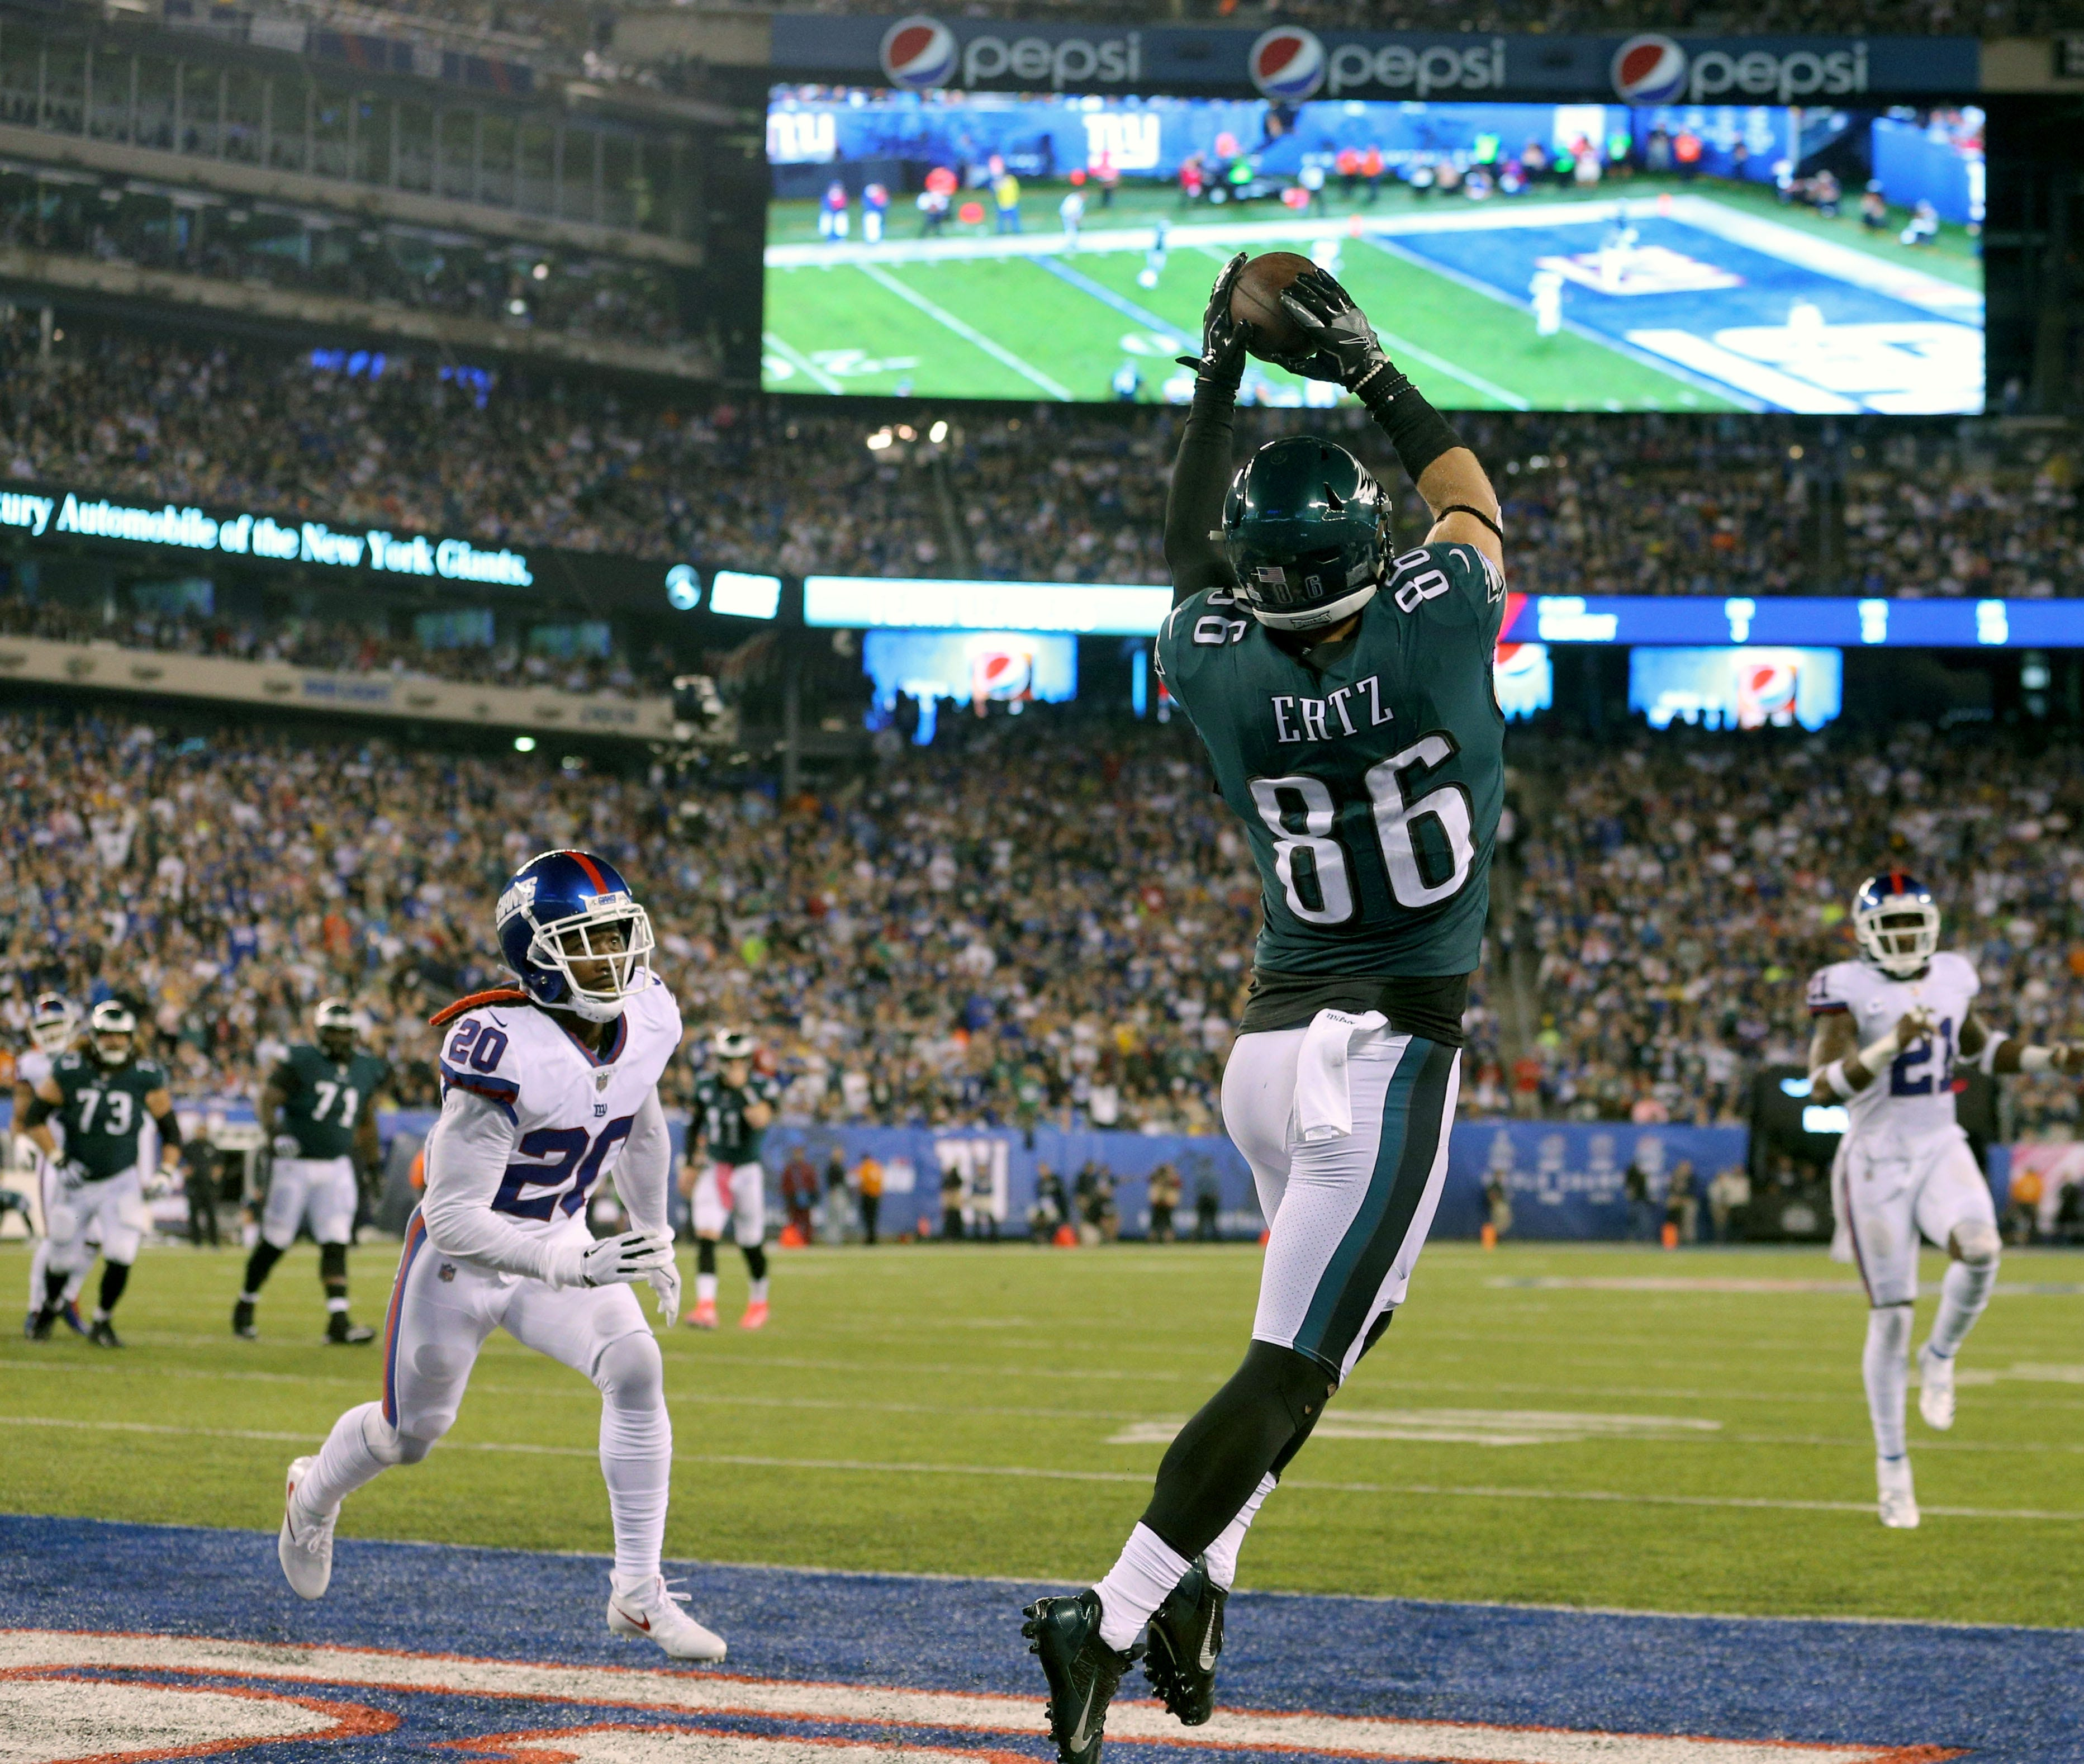 Philadelphia Eagles tight end Zach Ertz catches a touchdown pass against the New York Giants during the second quarter at MetLife Stadium.